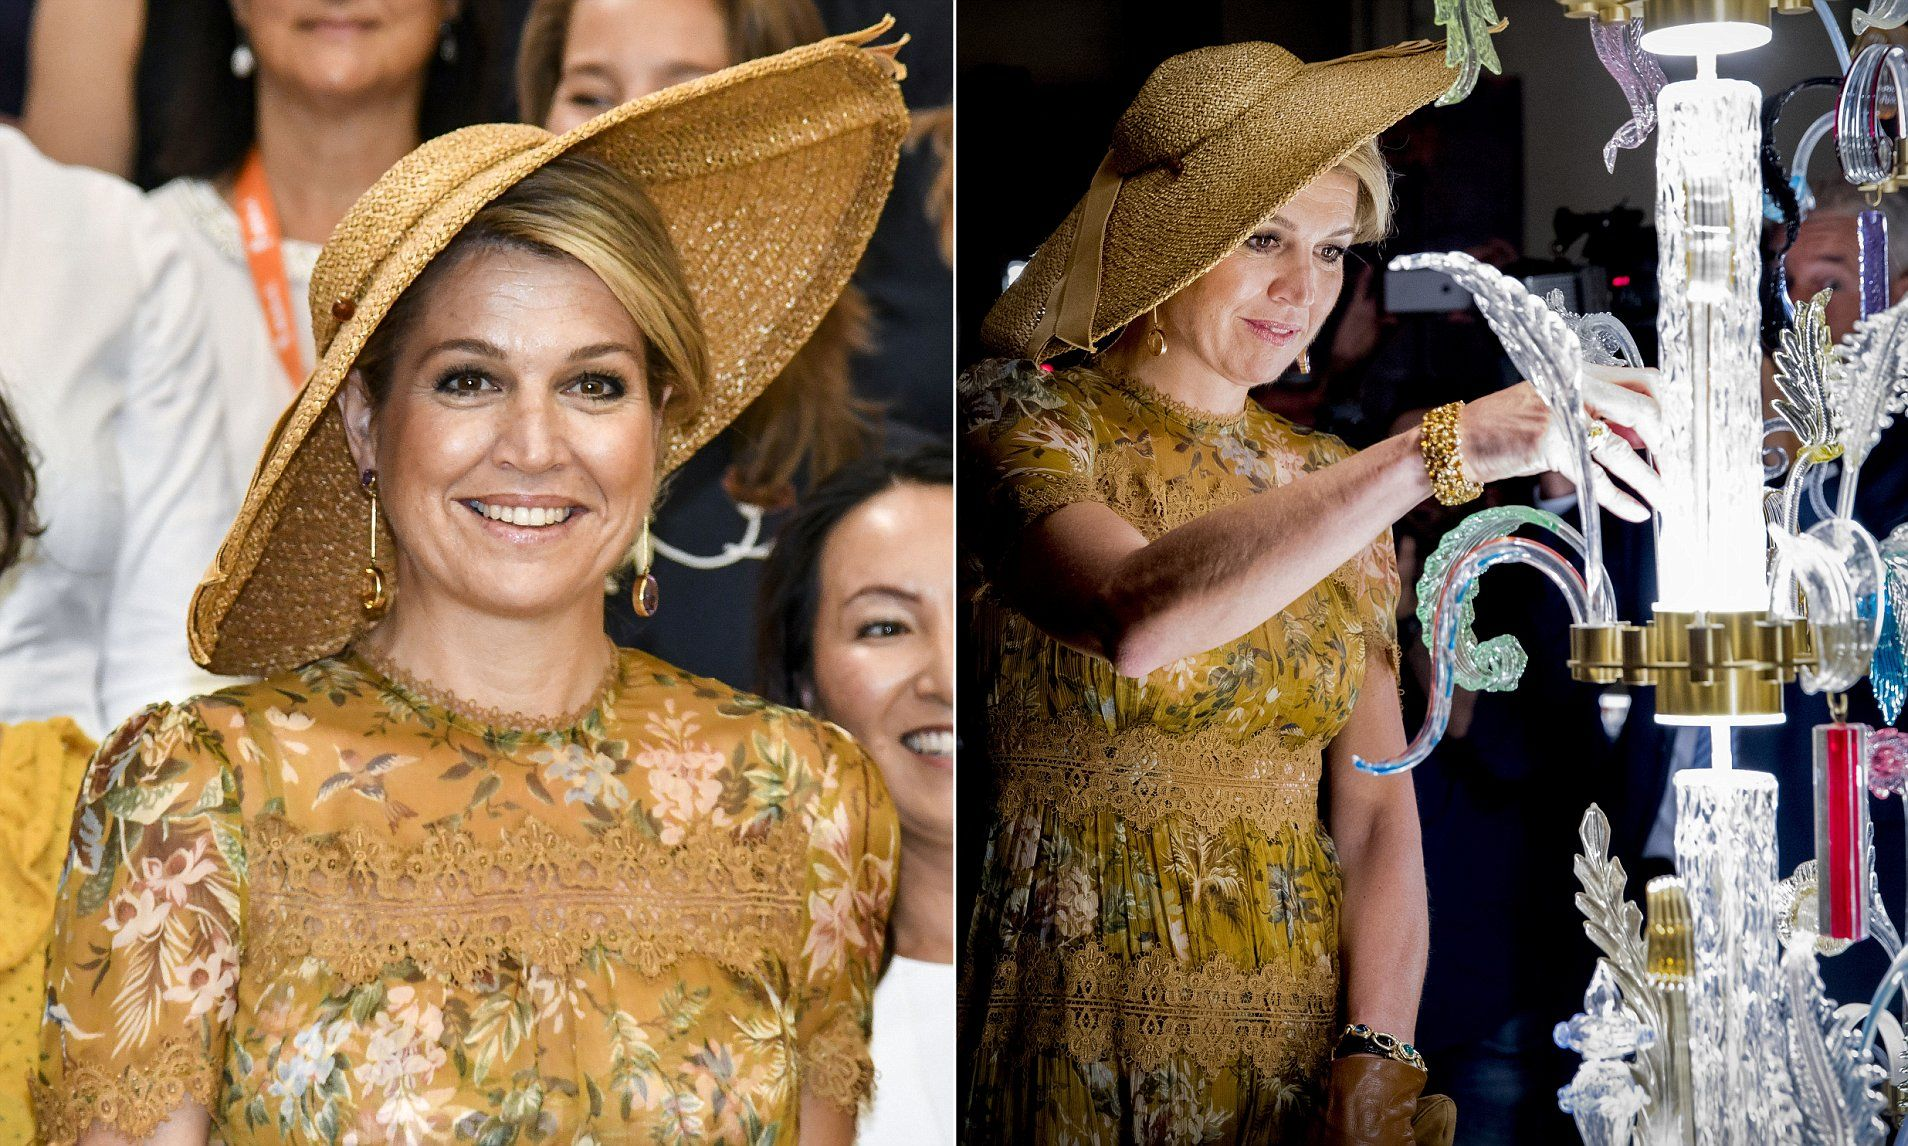 Queen Maxima, 46, was joined by husband King Willem Alexander for a tour of the Galleria Rossanna Orlandi in Milan on Friday.